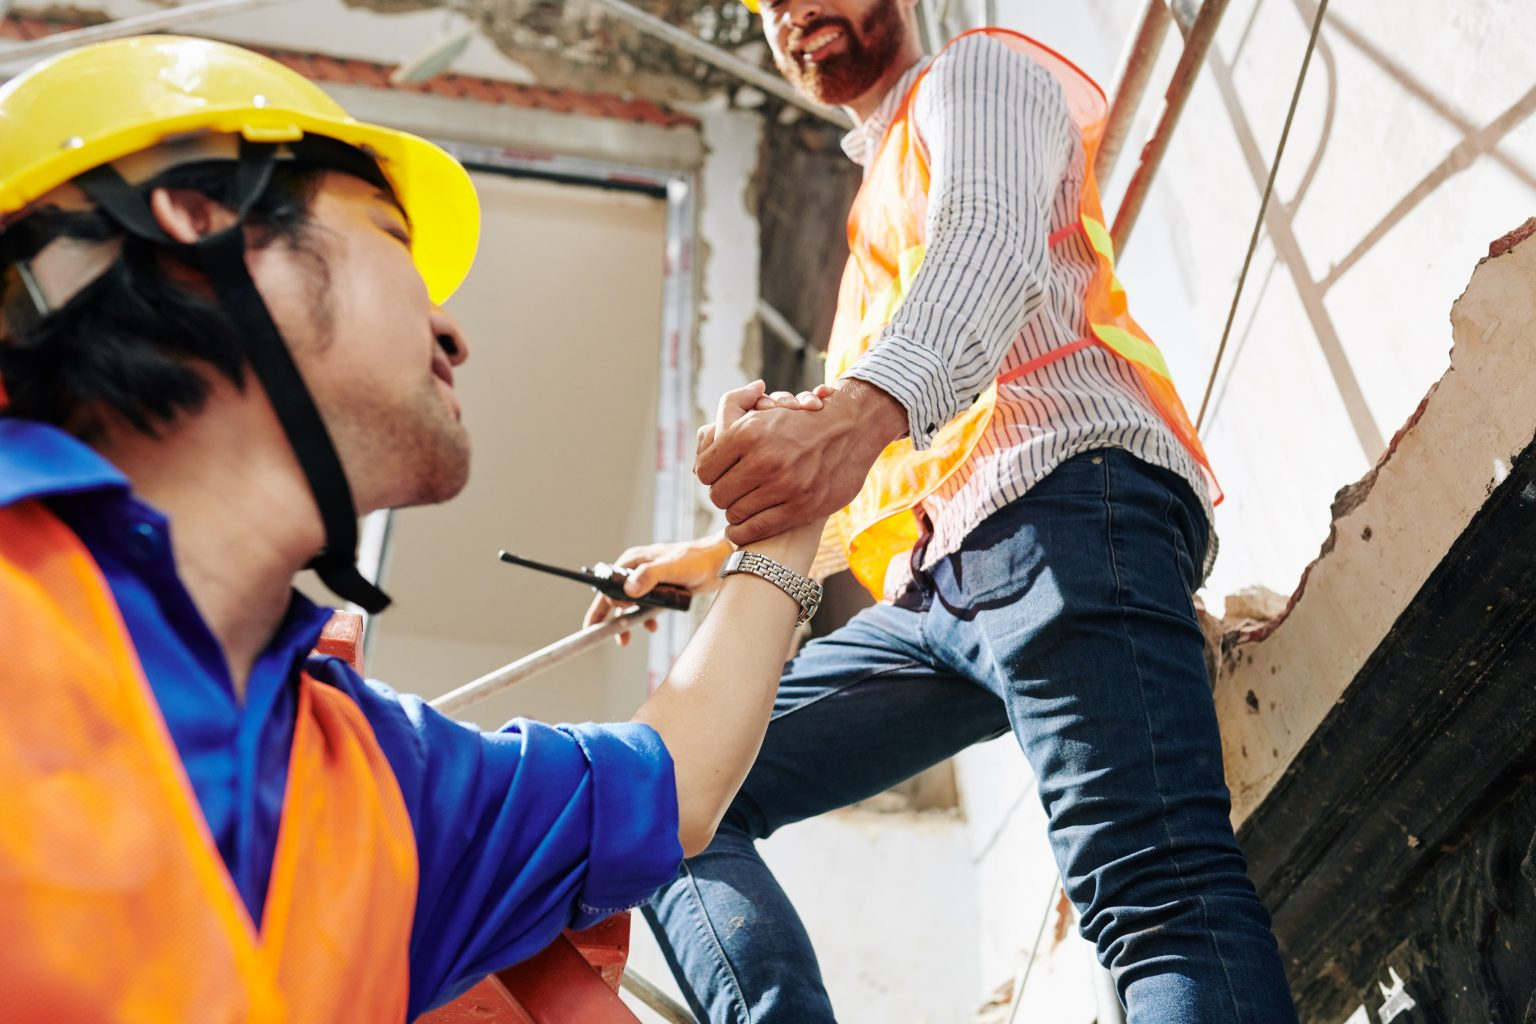 Construction worker helping colleague - Drug Free Business - 98011